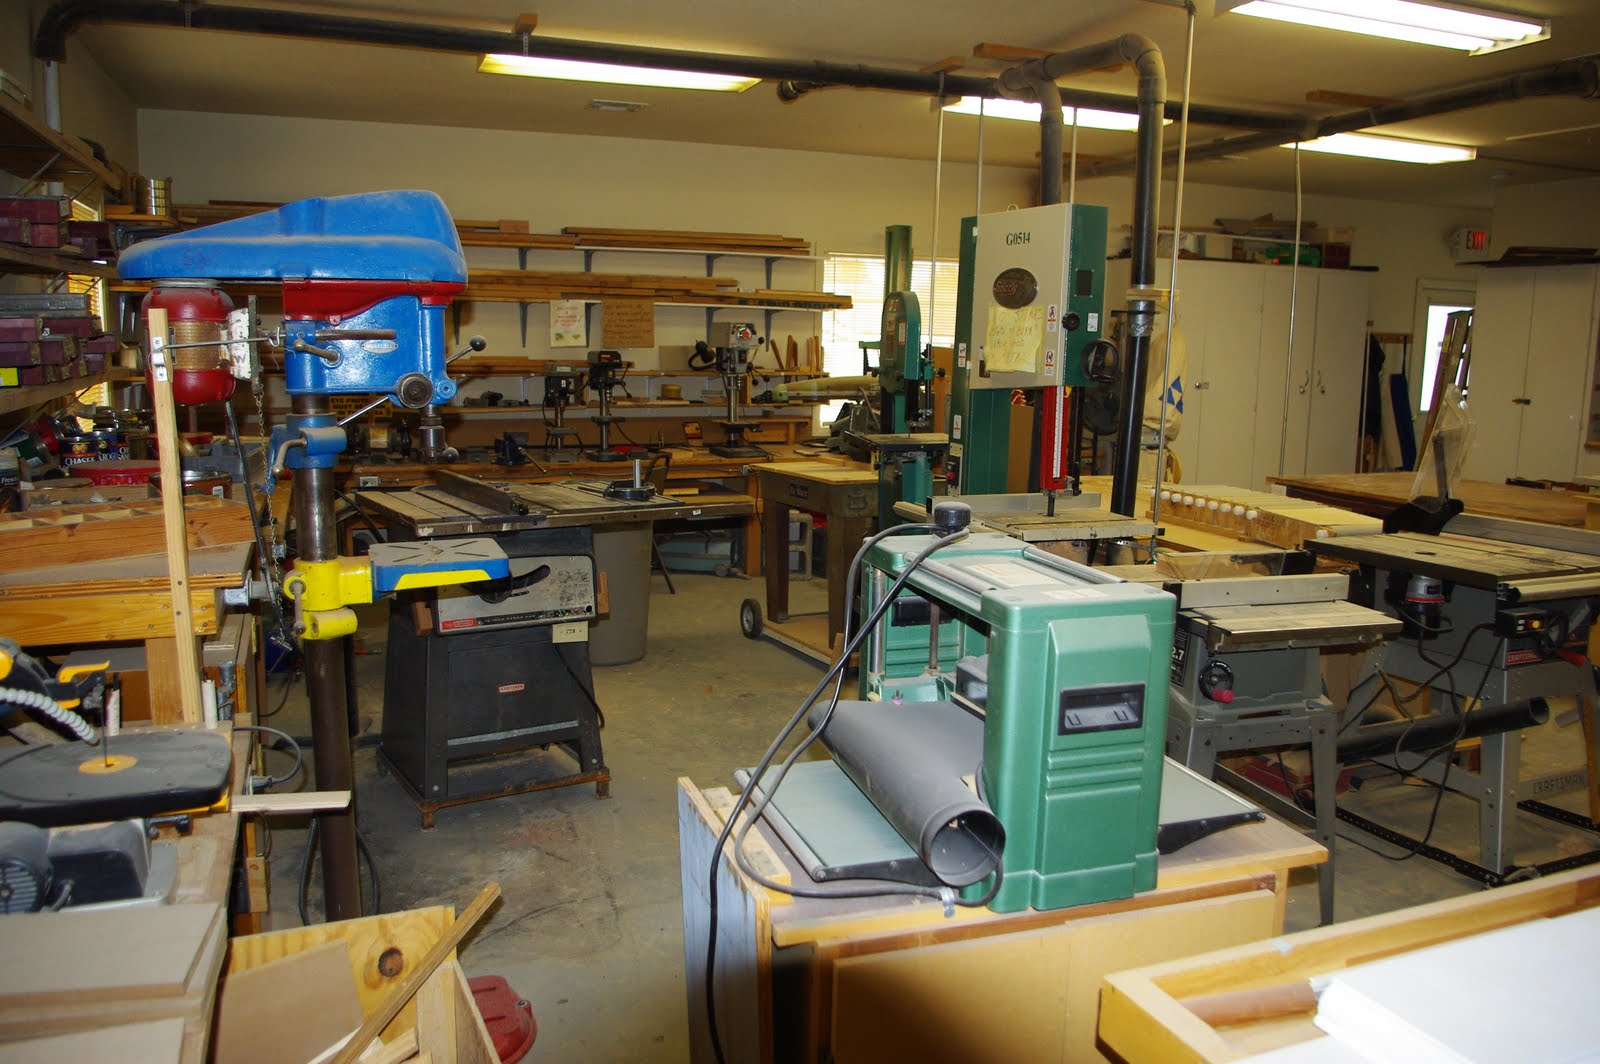 Innovative Wood Shop Dust Collector Plans Woodturning Supplies Las